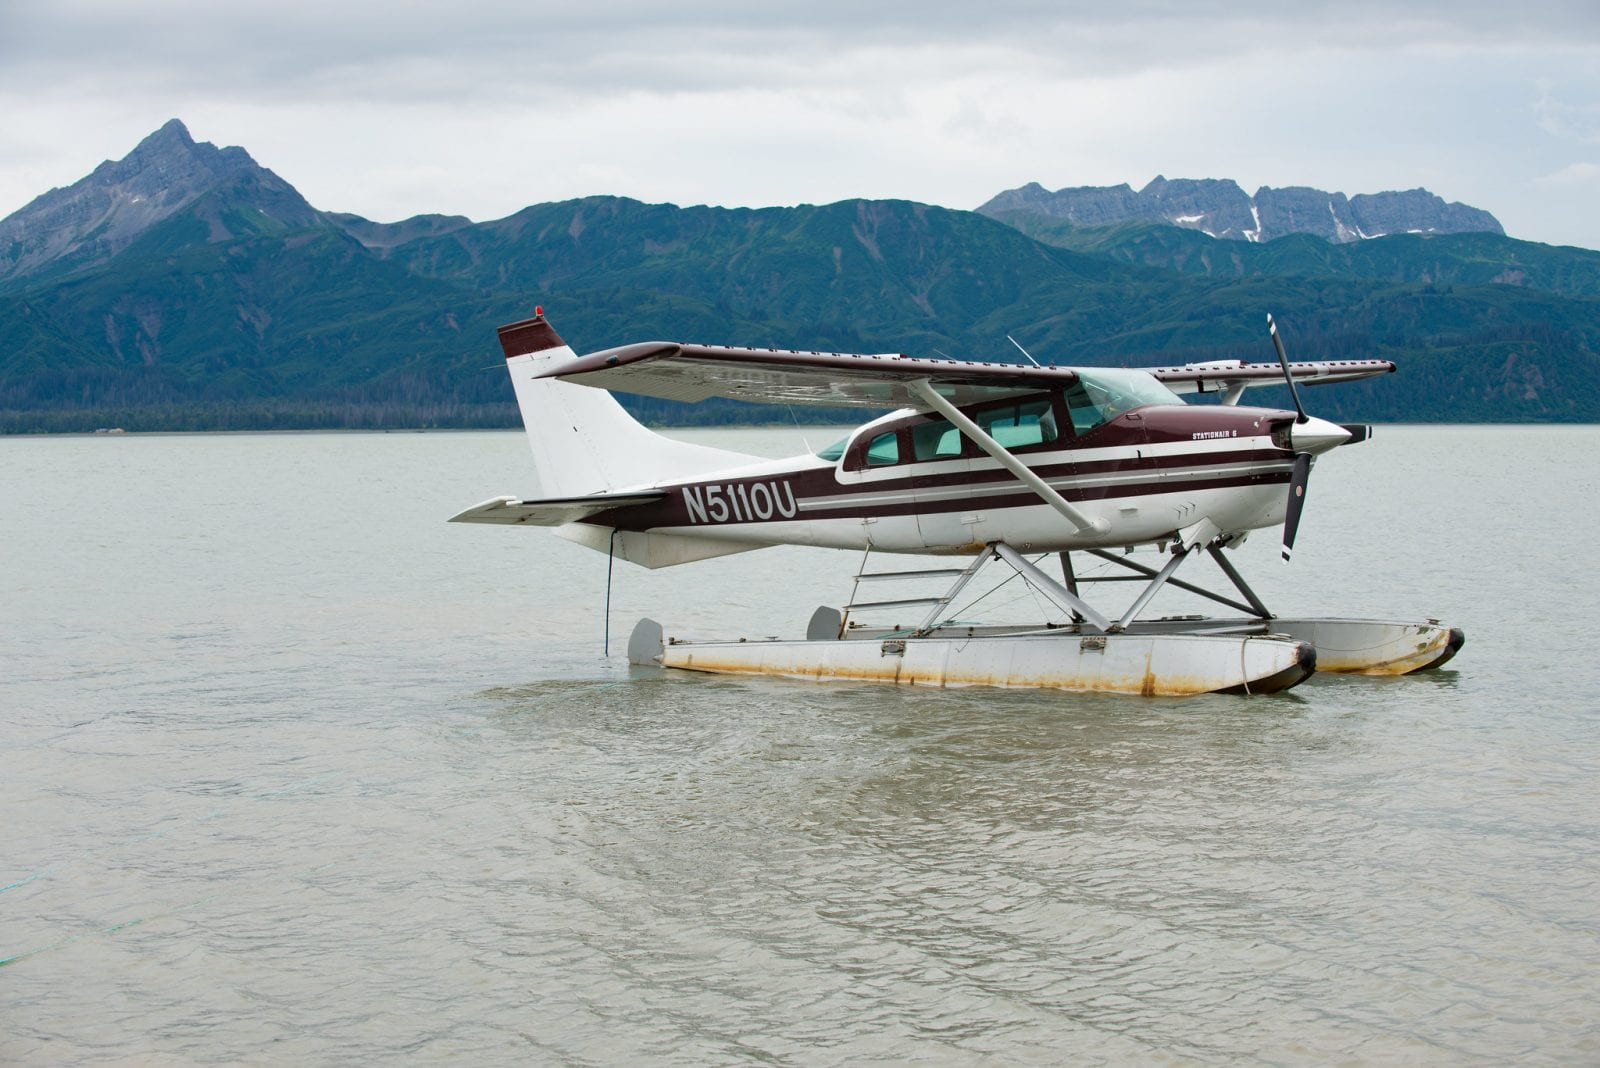 Image of a seaplane in the water in front of mountains